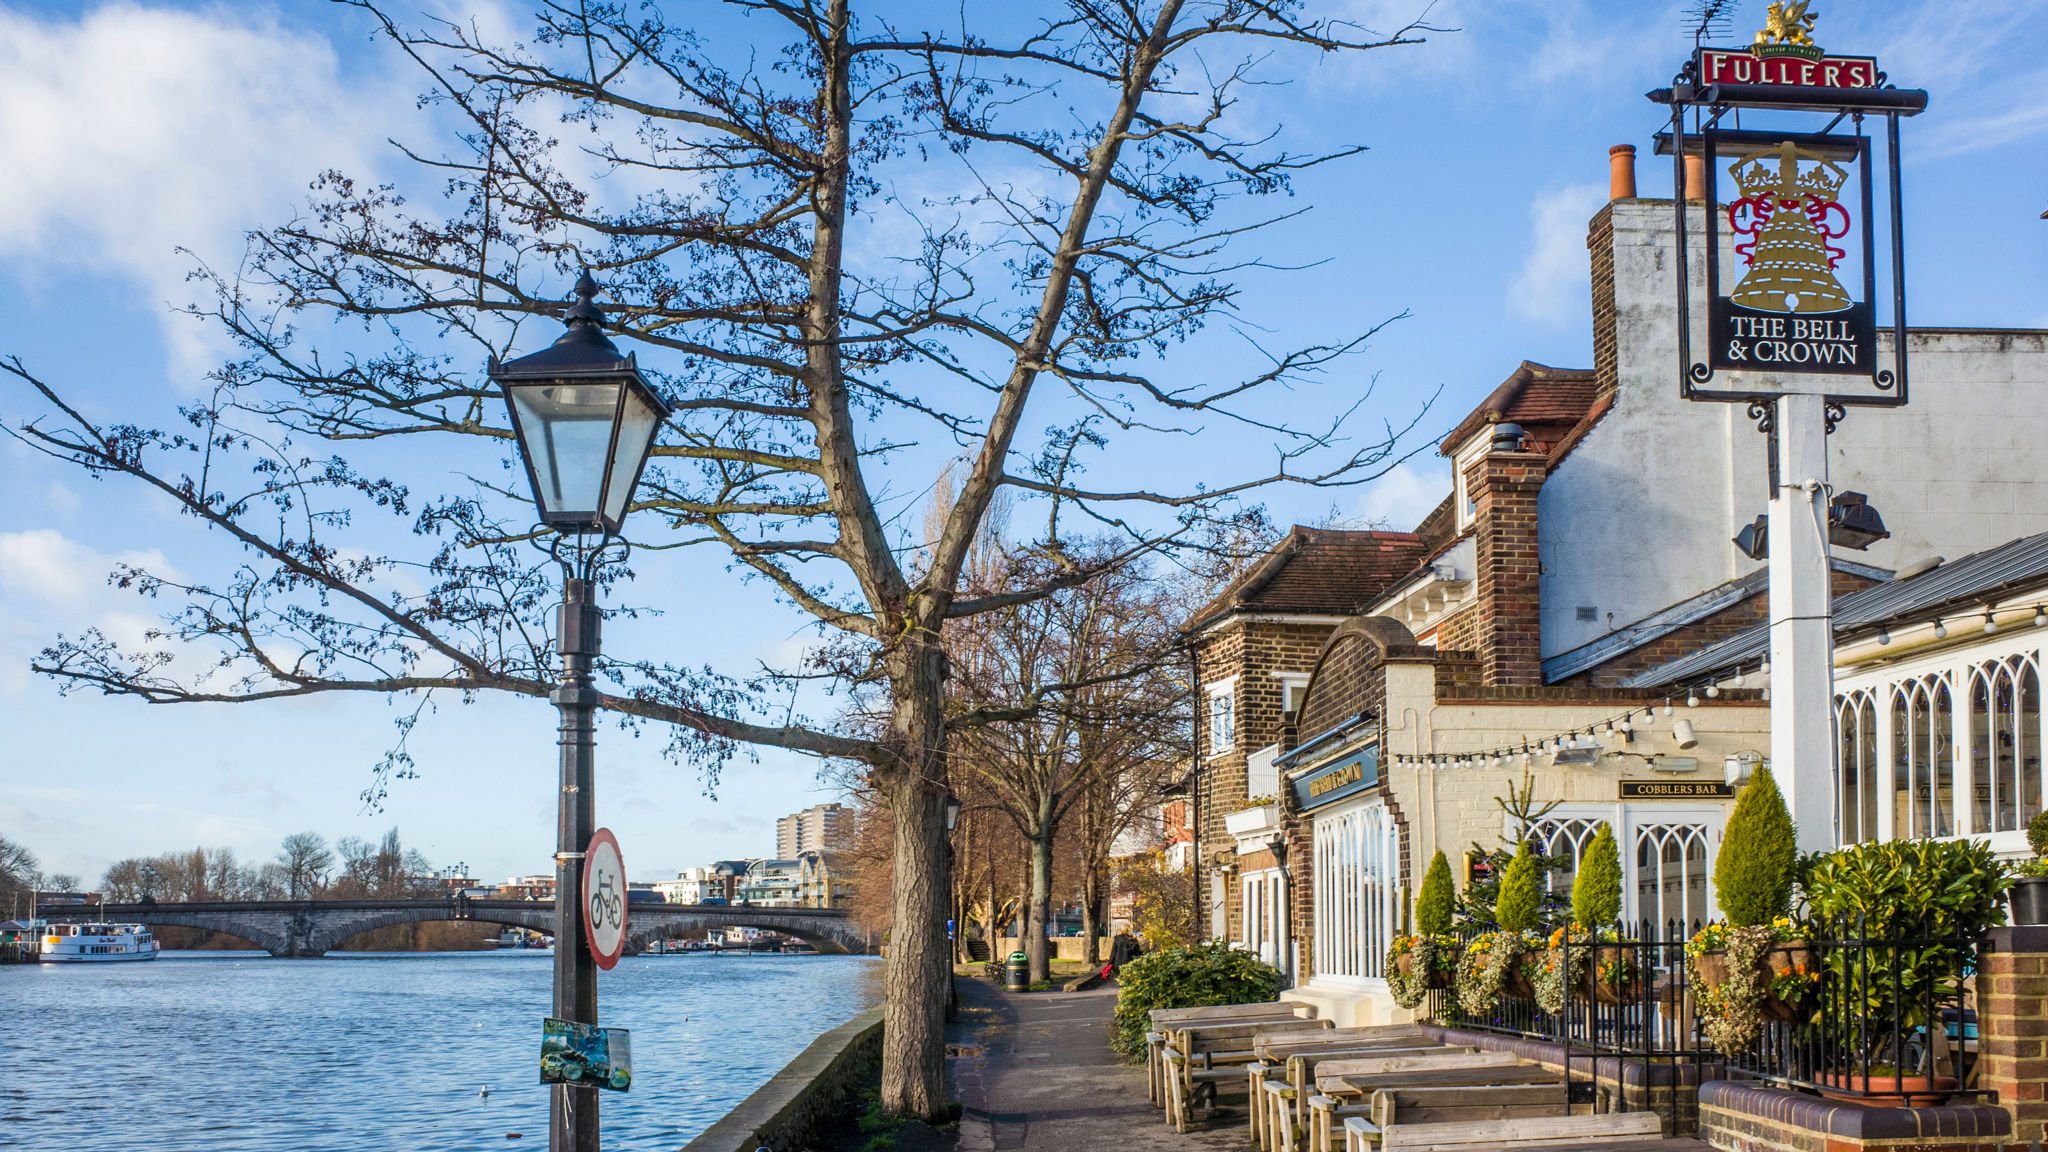 Chiswick property sellers demand top prices despite drop in sales